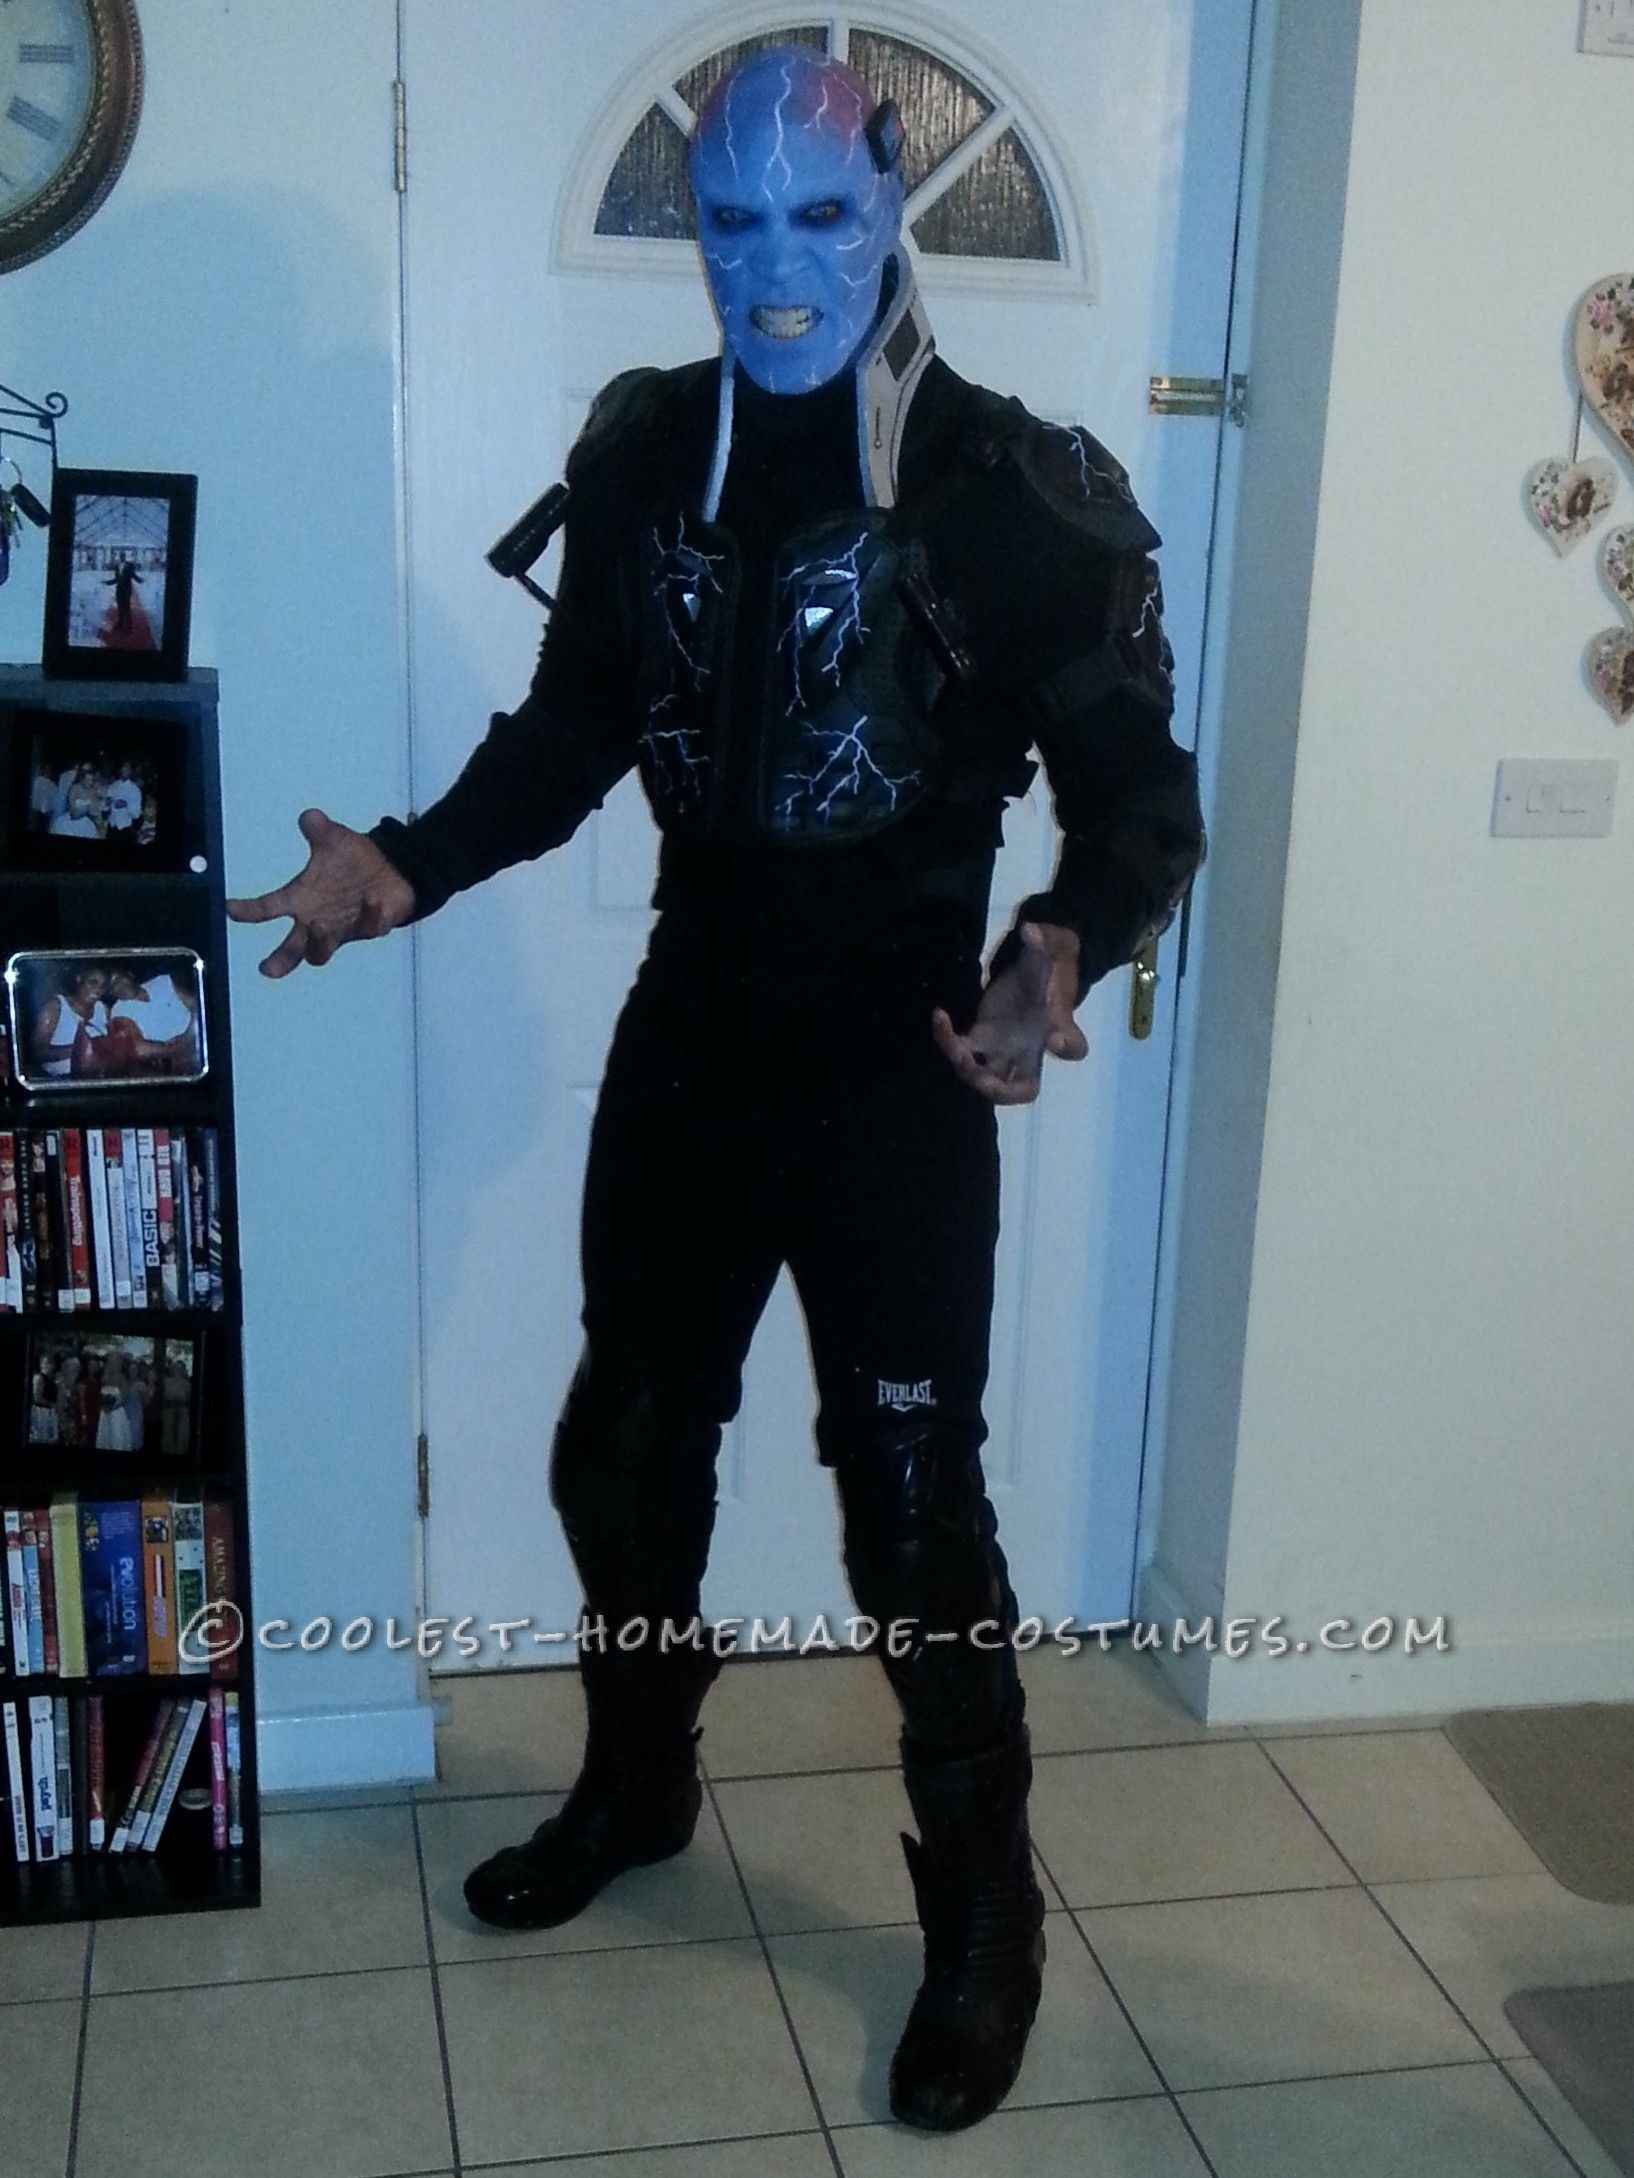 Awesome Electro Costume Ready to Defeat Spiderman! | Electro music ...